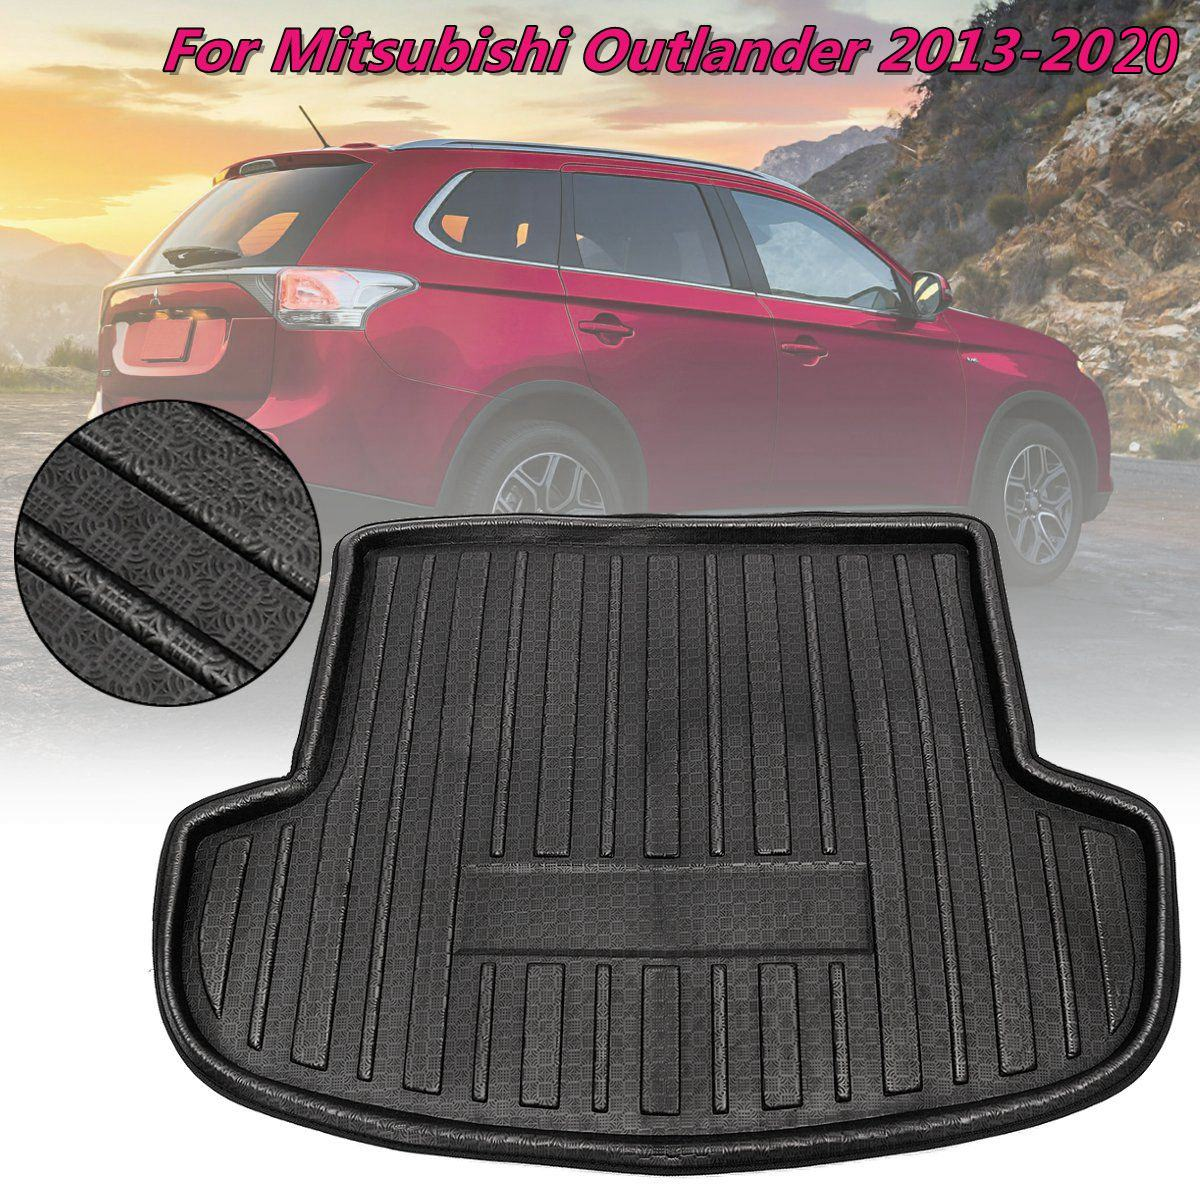 Rear Trunk Liner Boot Mat Cargo Tray Floor Carpet For Mitsubishi Outlander 2013 2014 2015 2016 2017 2018 2019 2020 1piece